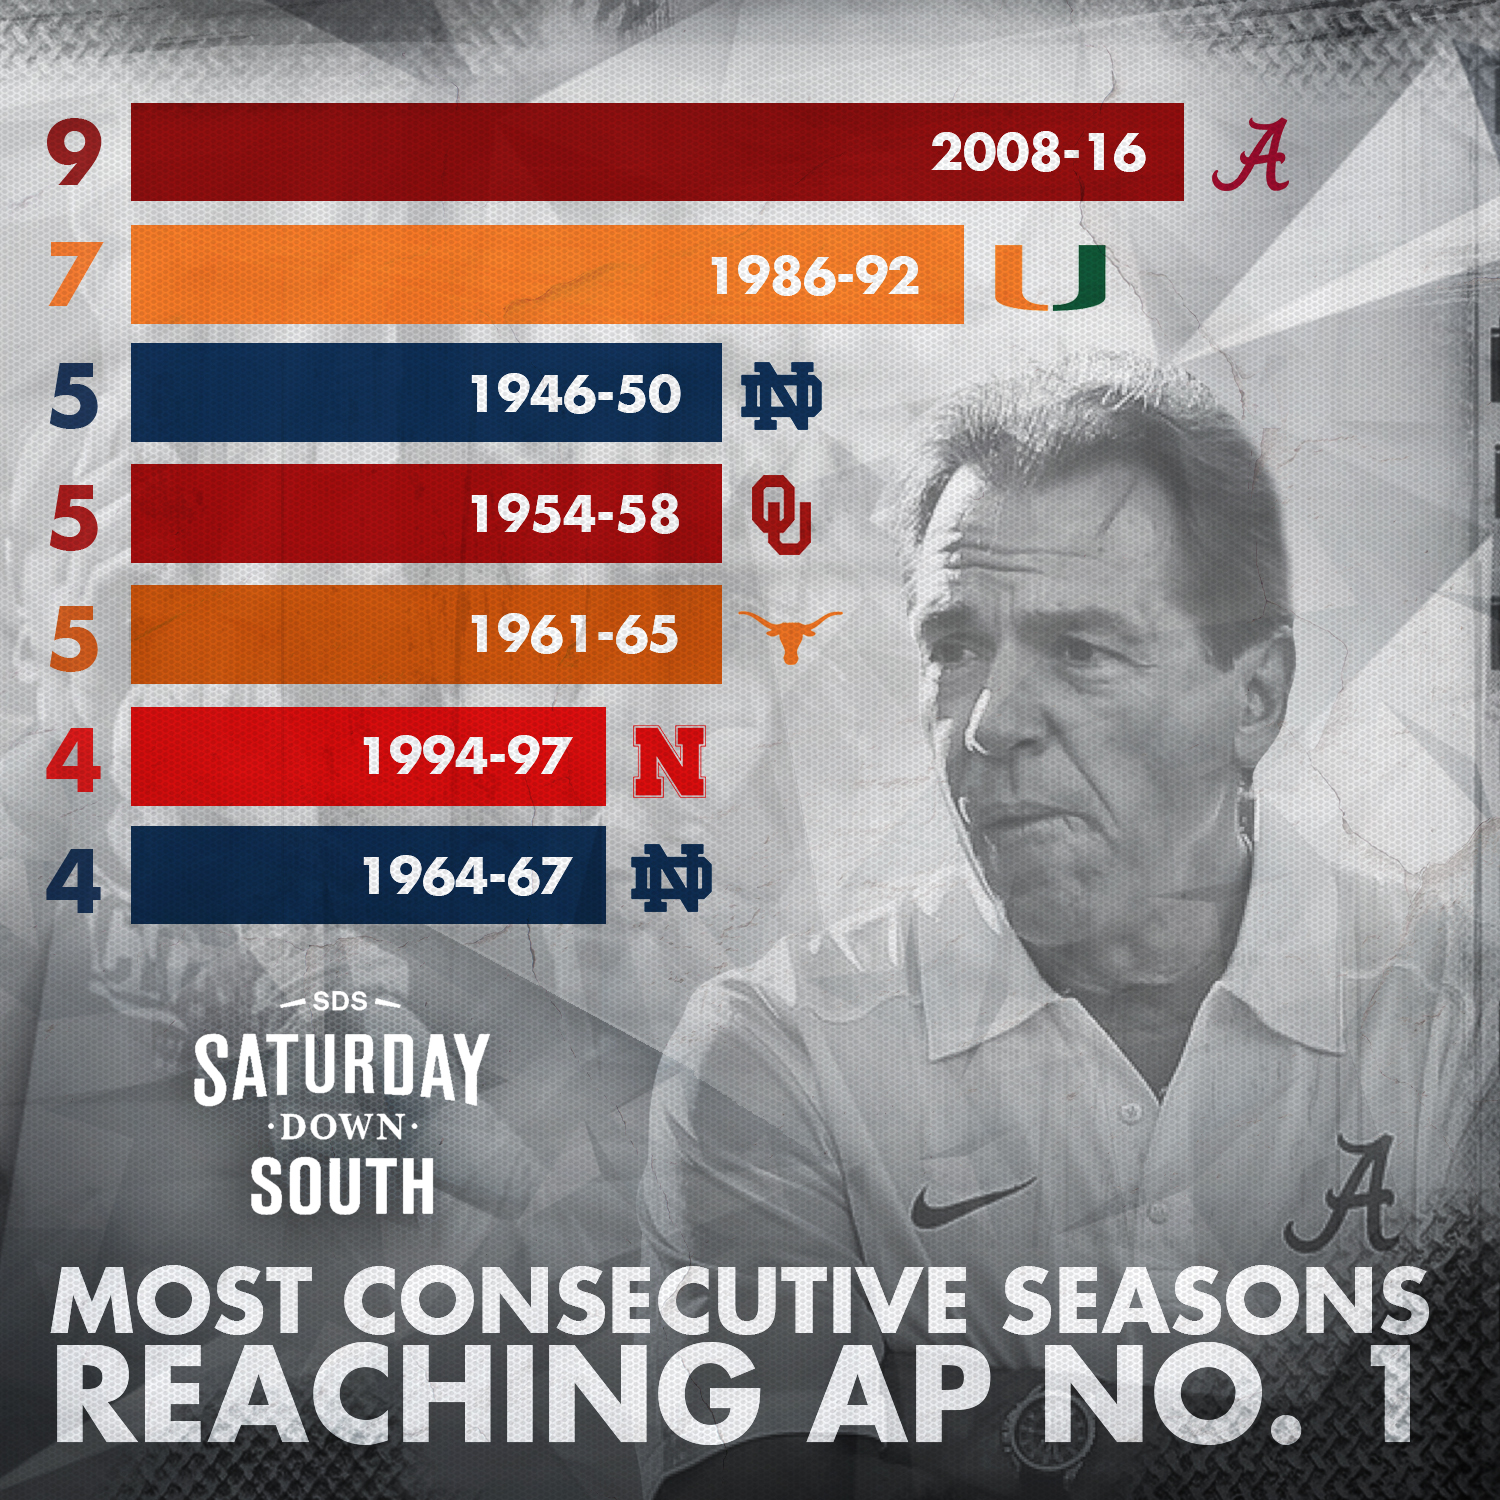 most-consecutive-seasons-reaching-ap-no